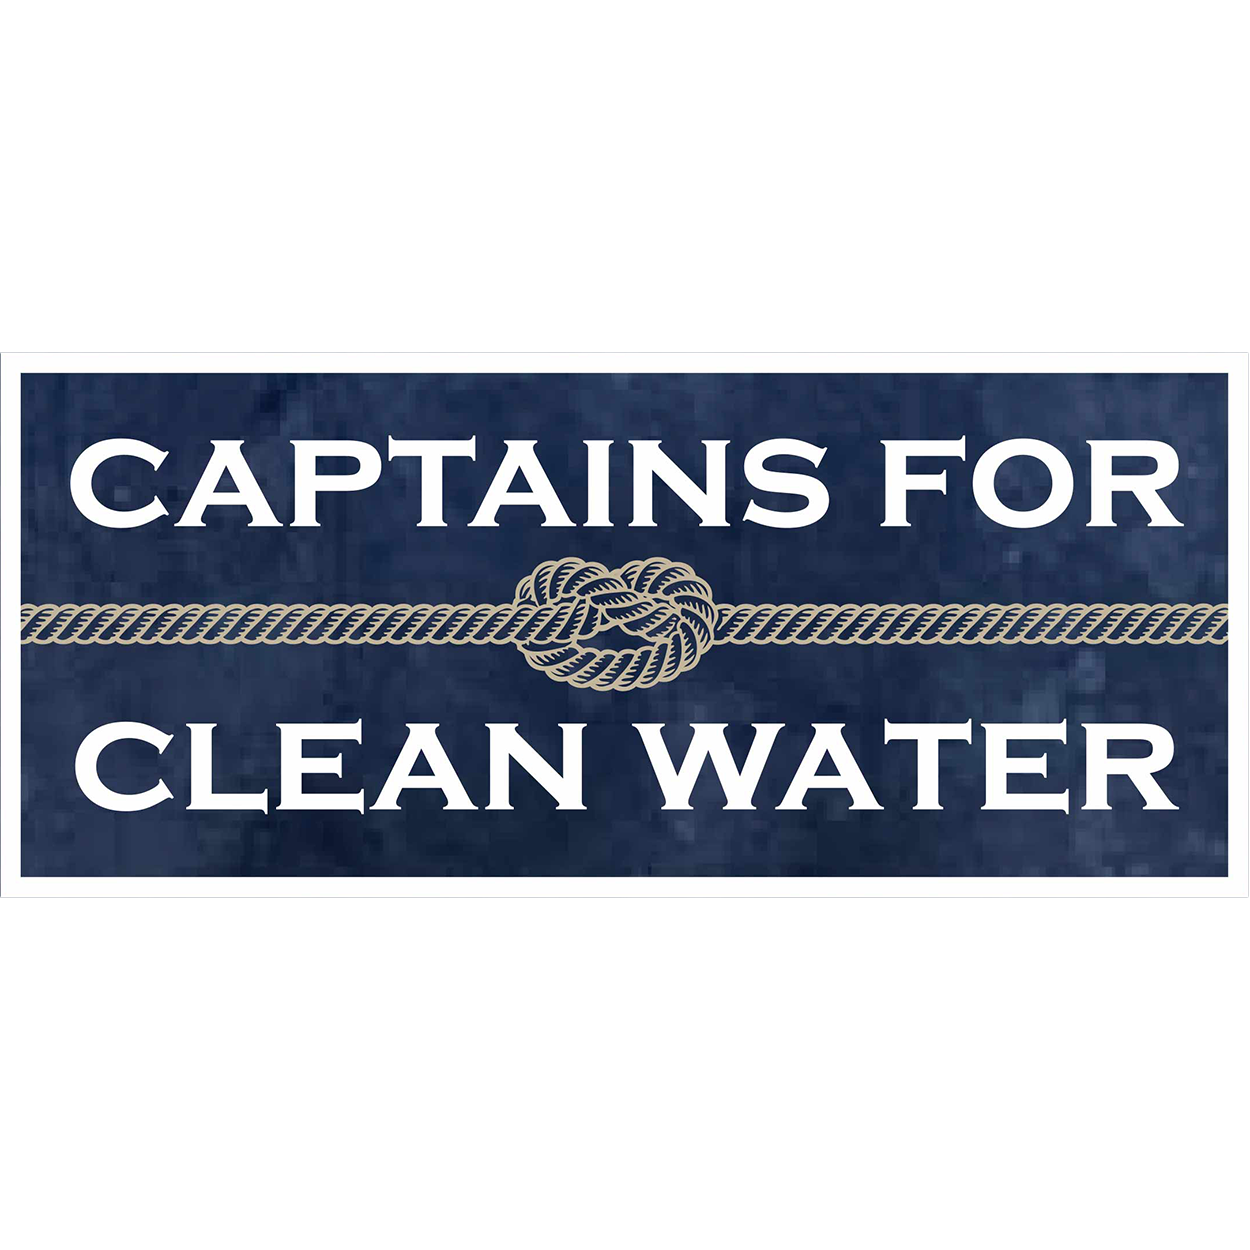 captains for clean water photoshop logo.png